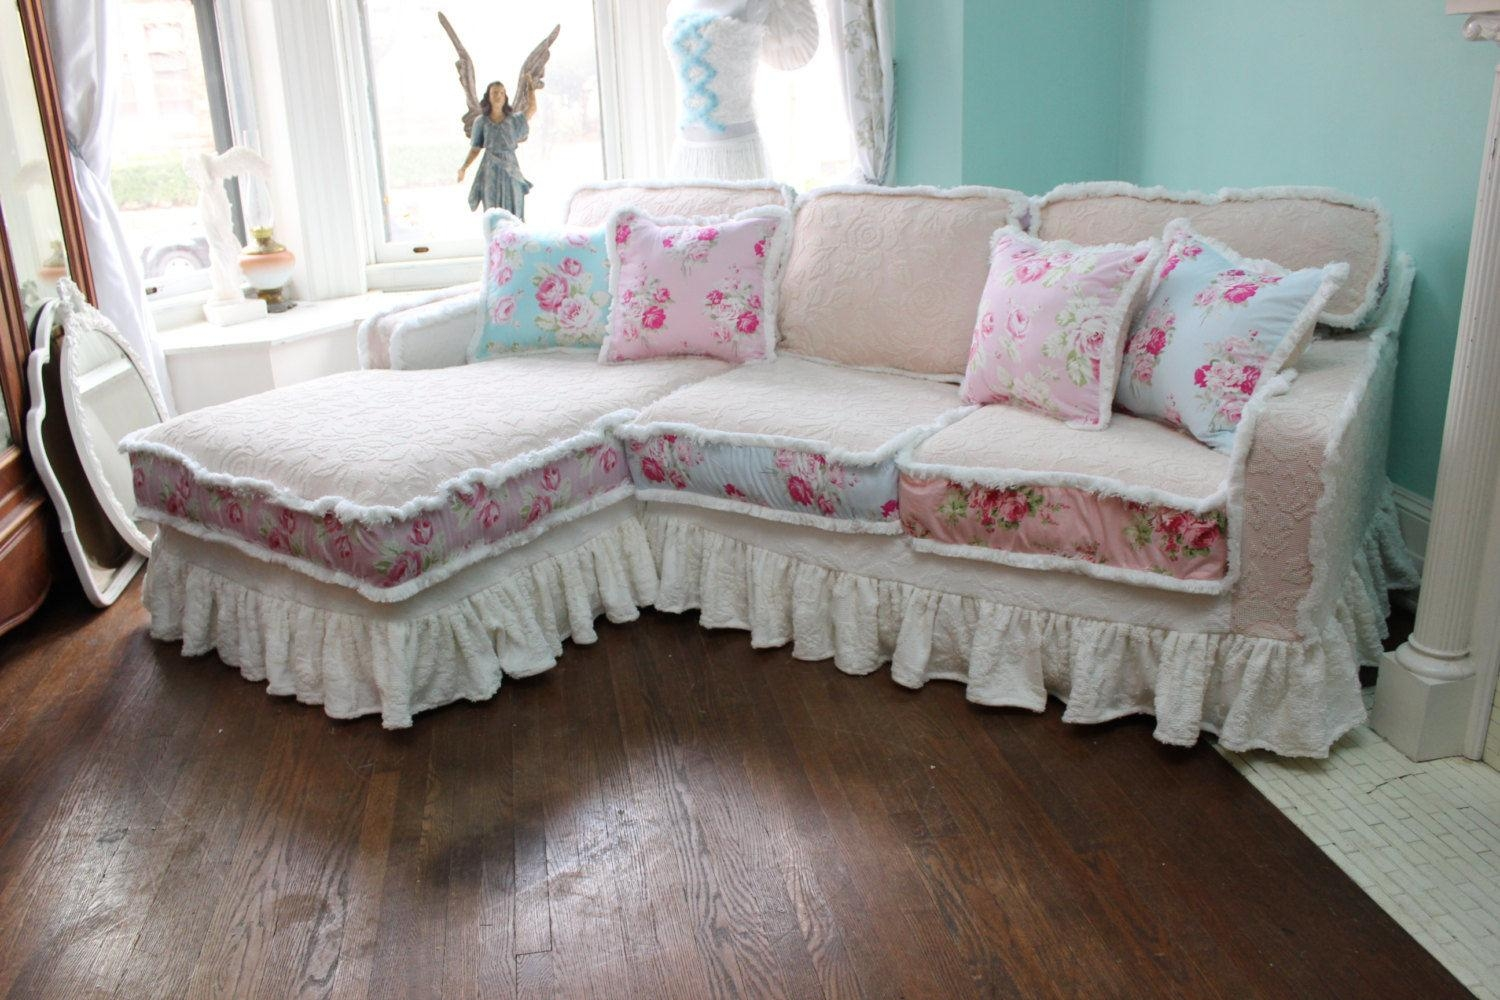 Sofas Center : 31 Marvelous Shabby Chic Sofa Picture Design Shabby Regarding Shabby Chic Sofas Cheap (Image 9 of 20)